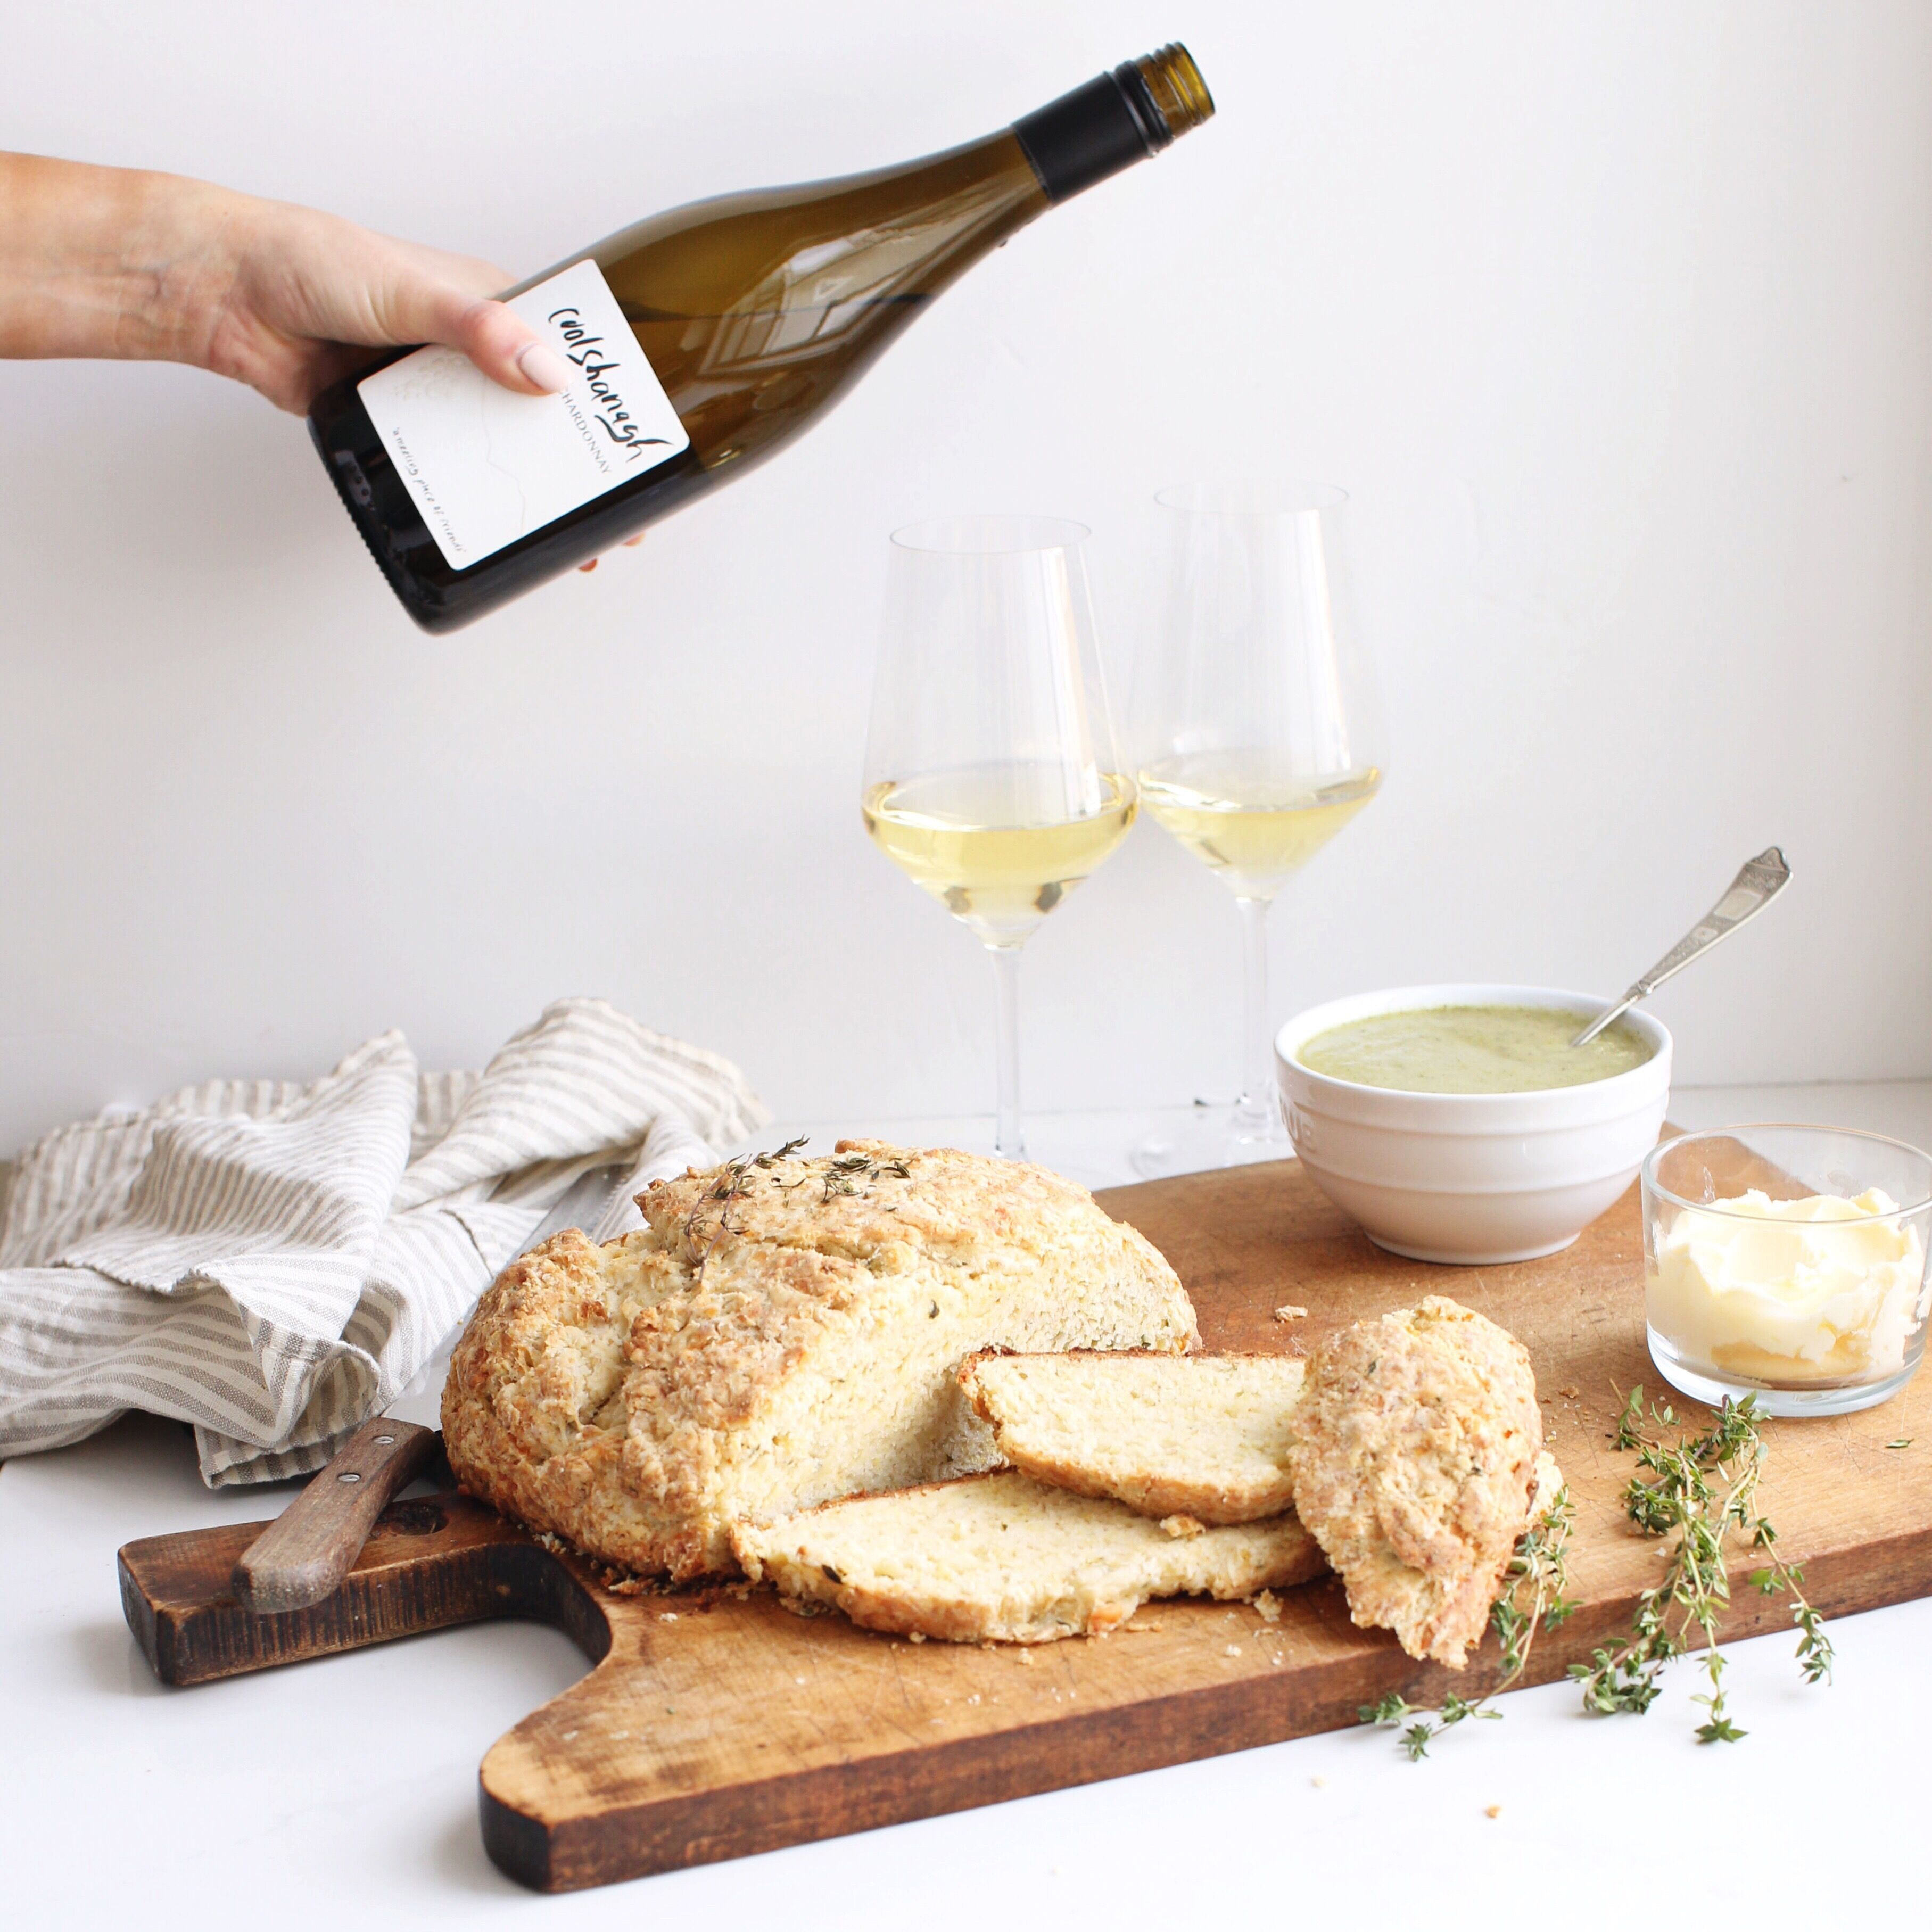 Irish soda bread with herbs and a chardonnay wine pairing perfect for St. Patrick's Day!